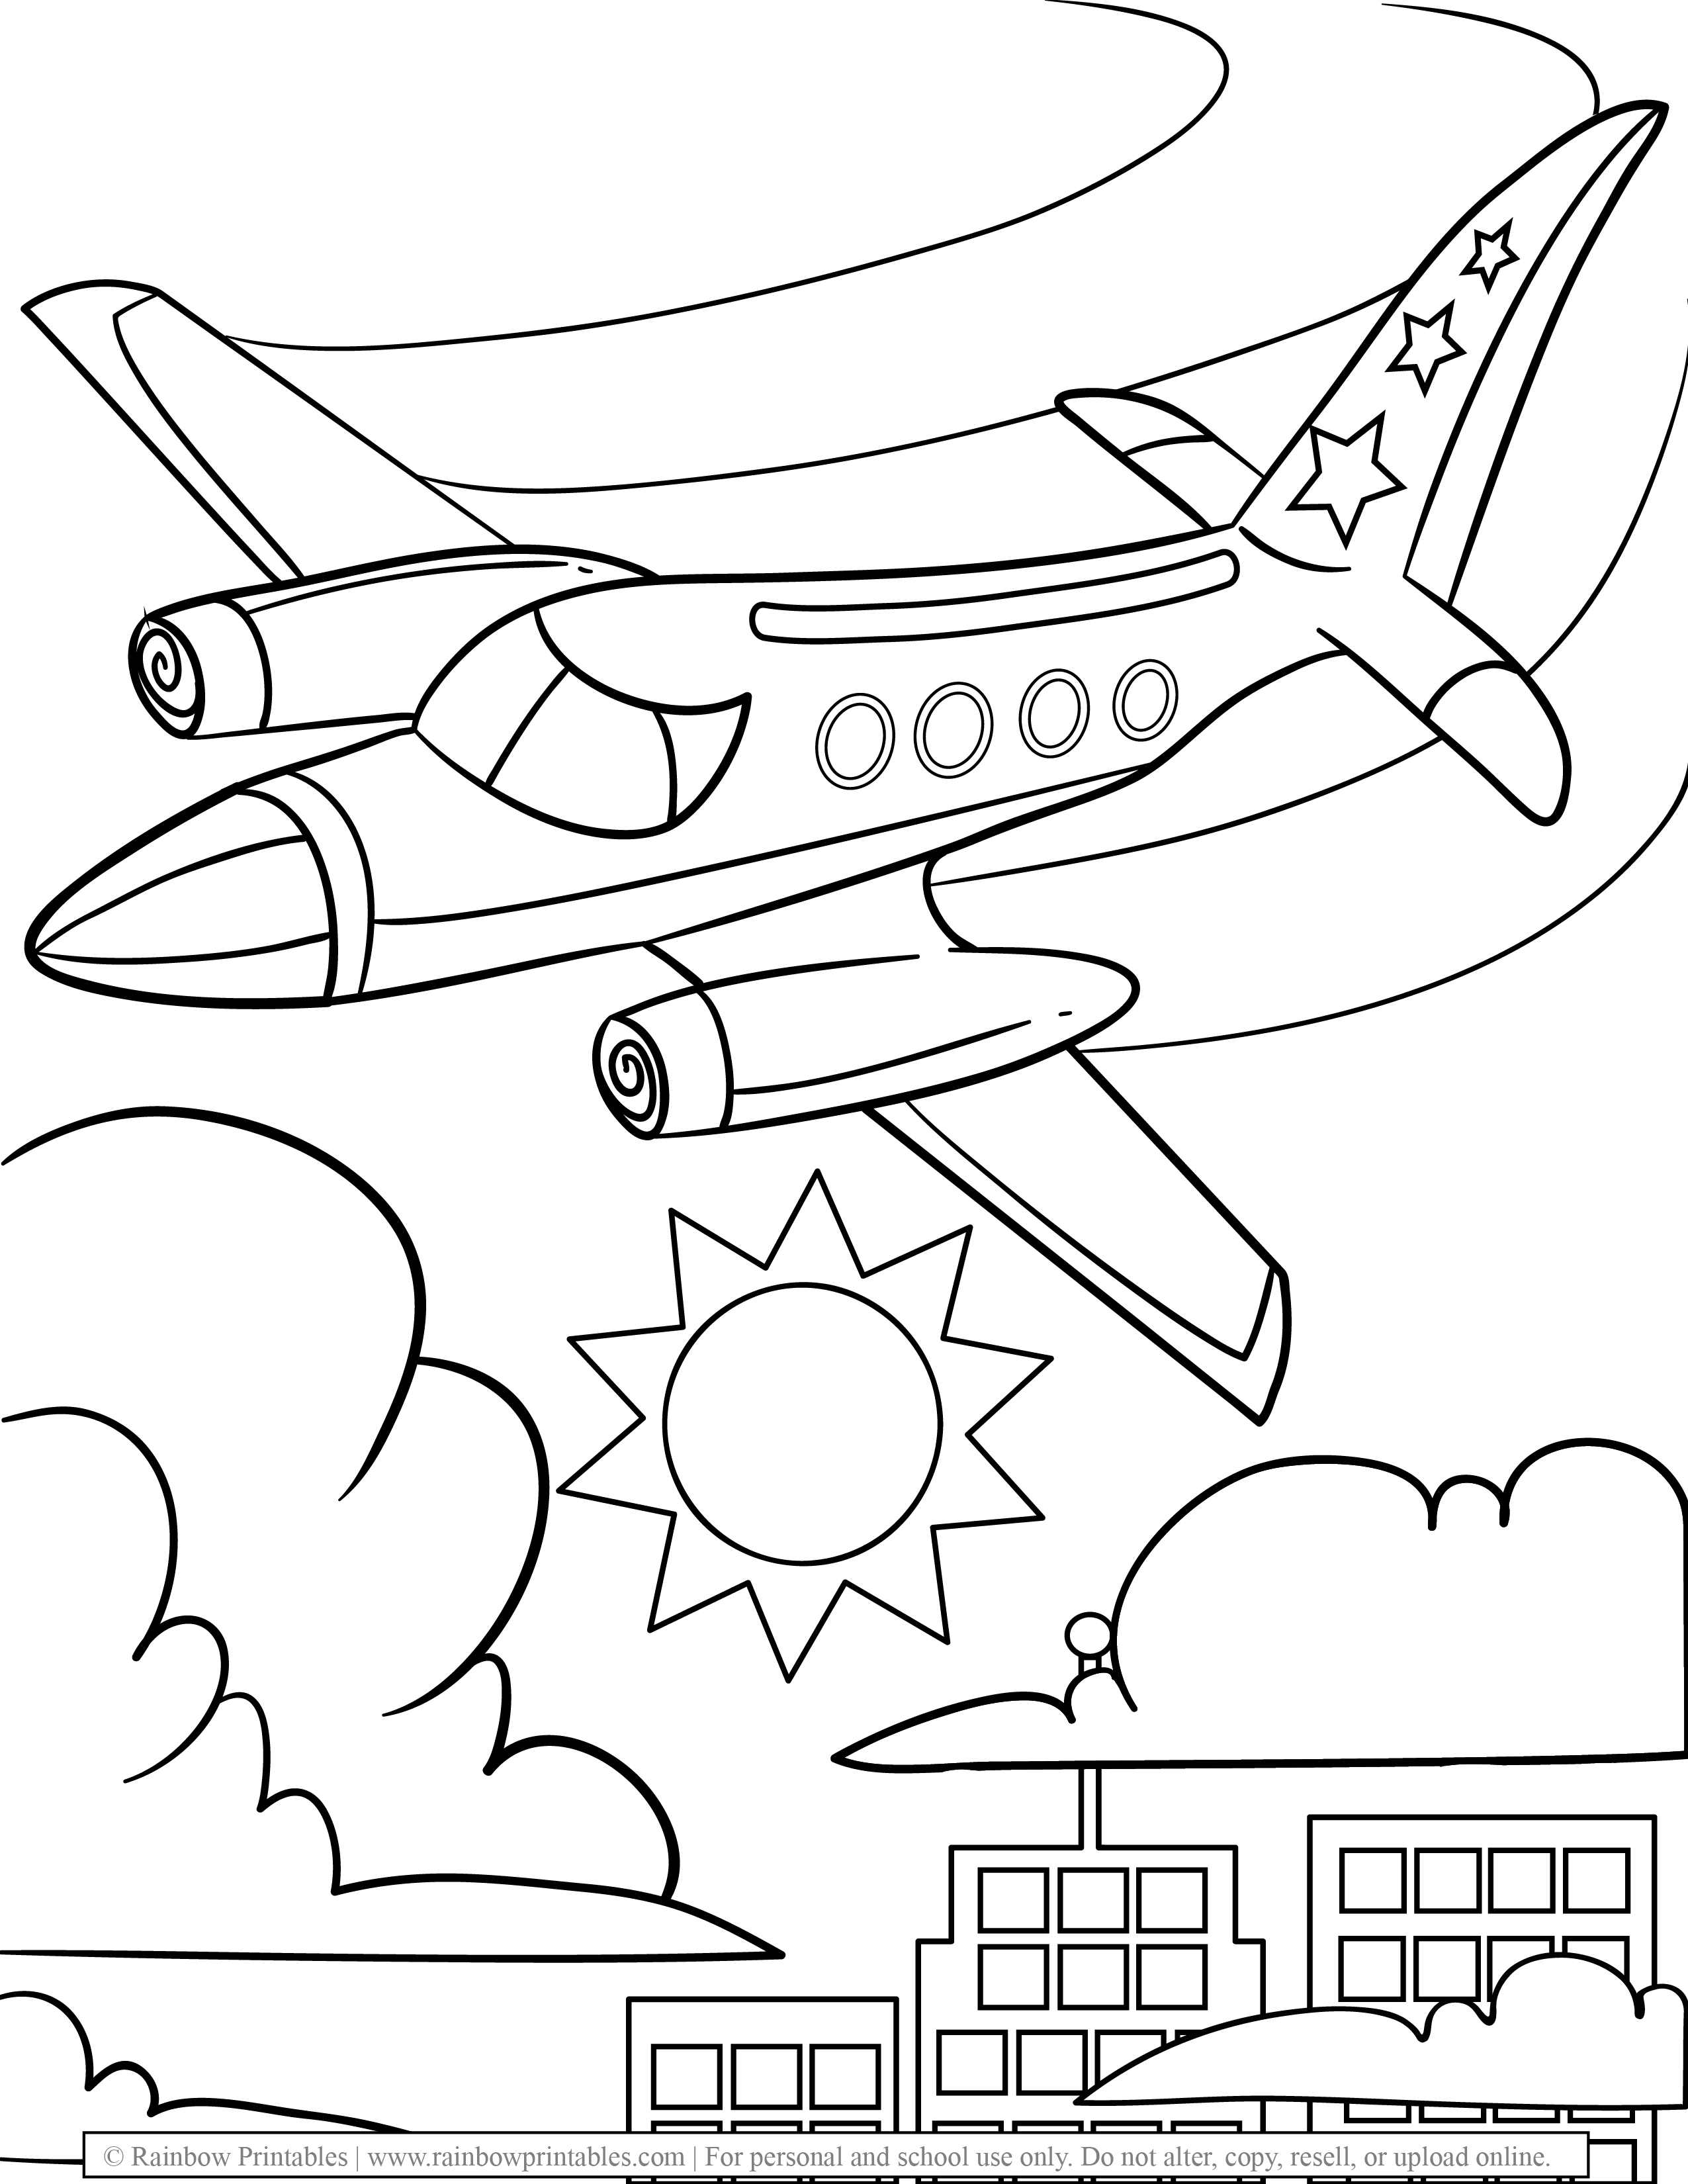 Military Airplane Jetplane Free Coloring Pages for Kids Drawing Activities Line Art Illustration